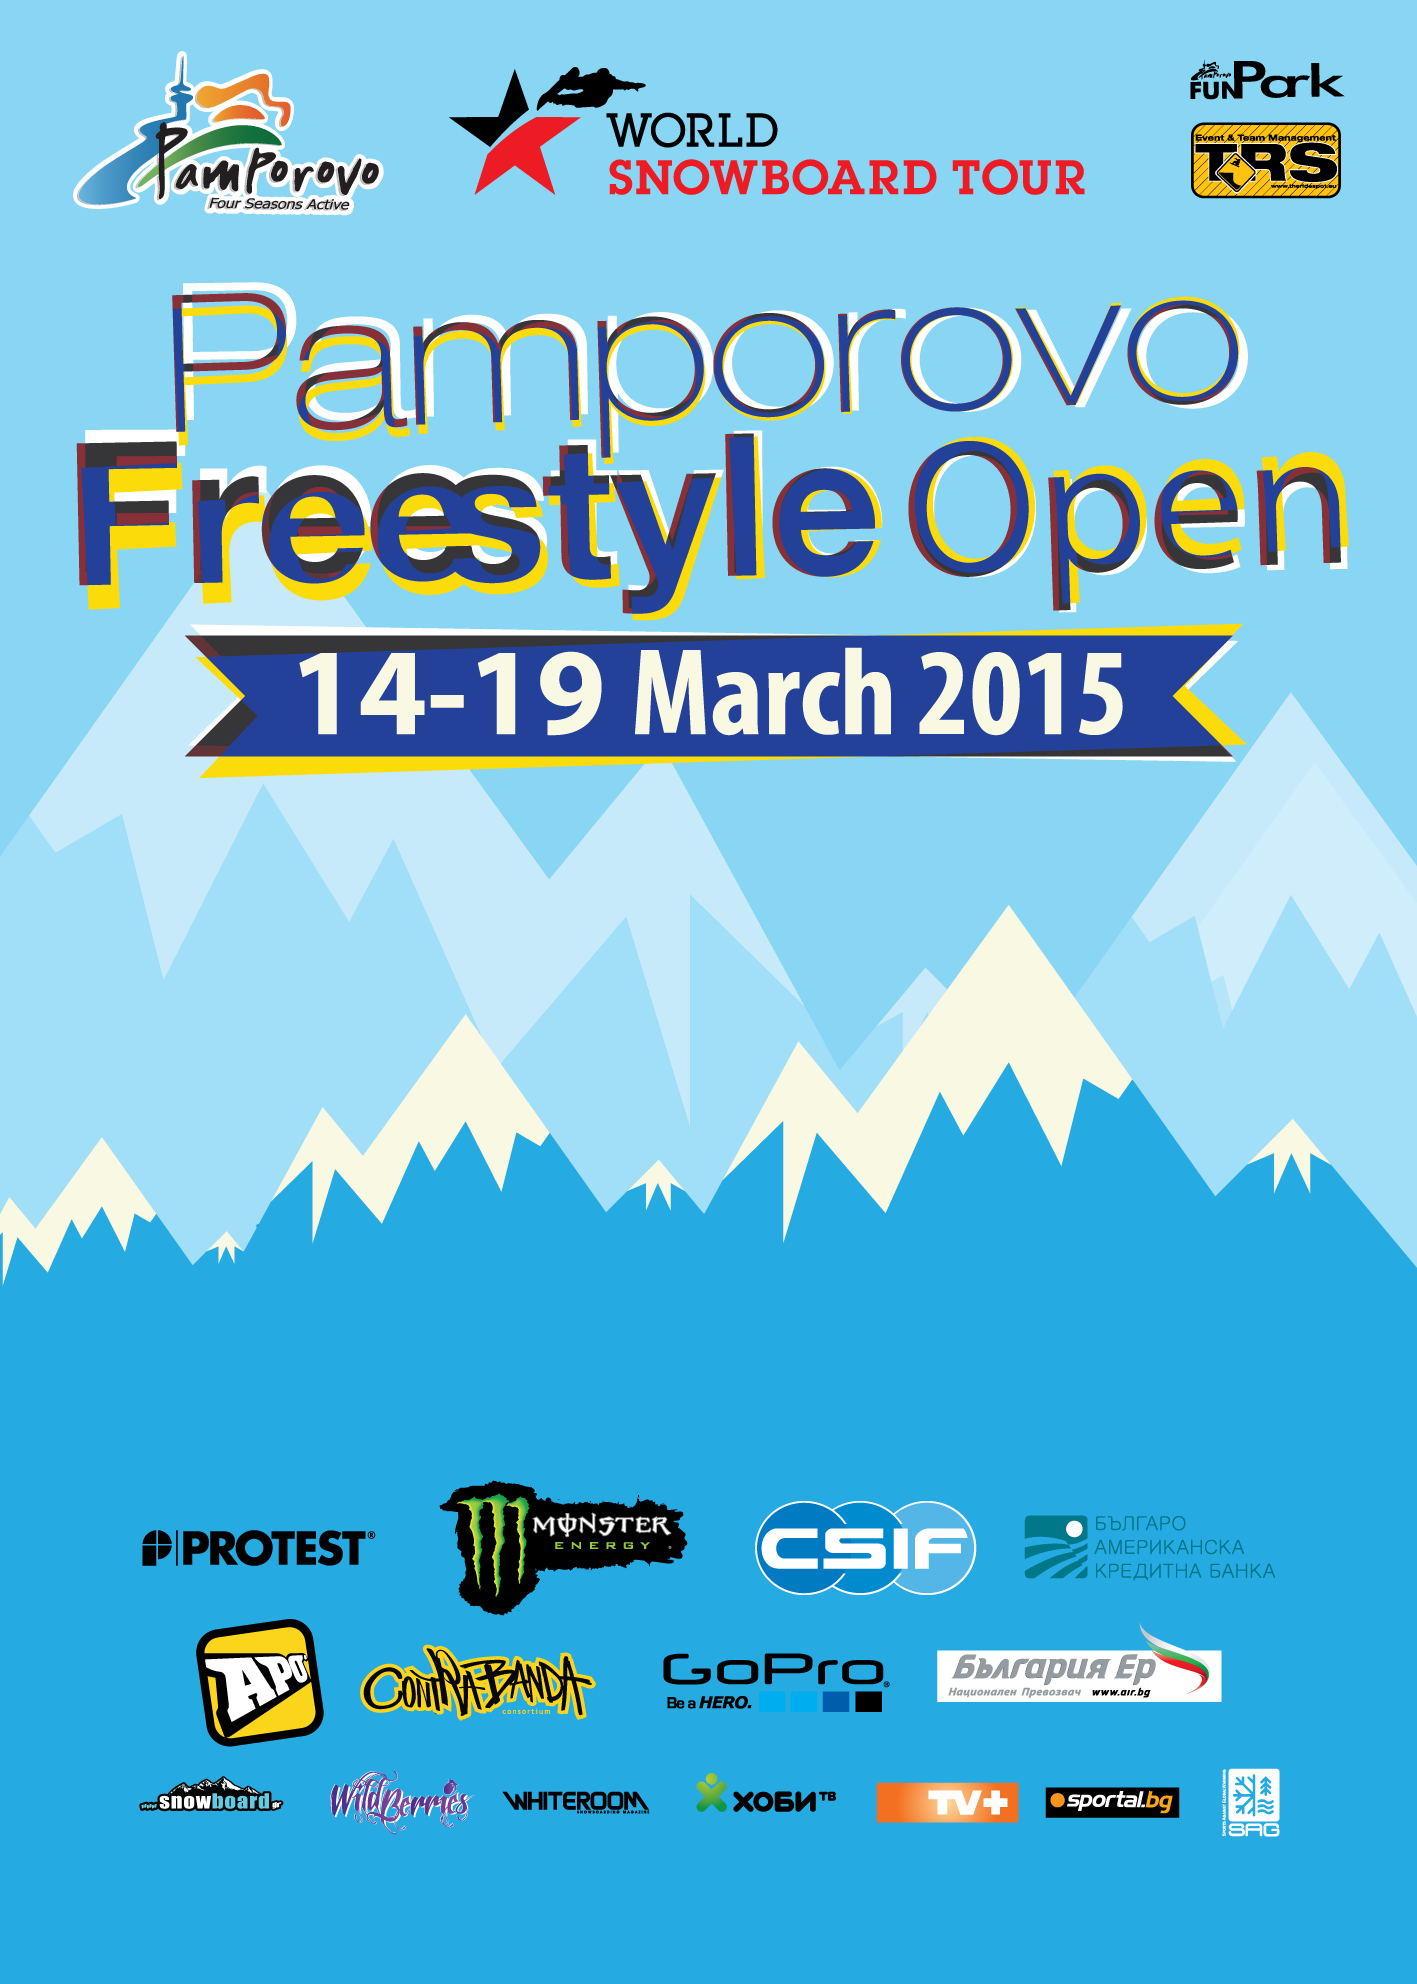 Pamporovo Freestyle Open 2015